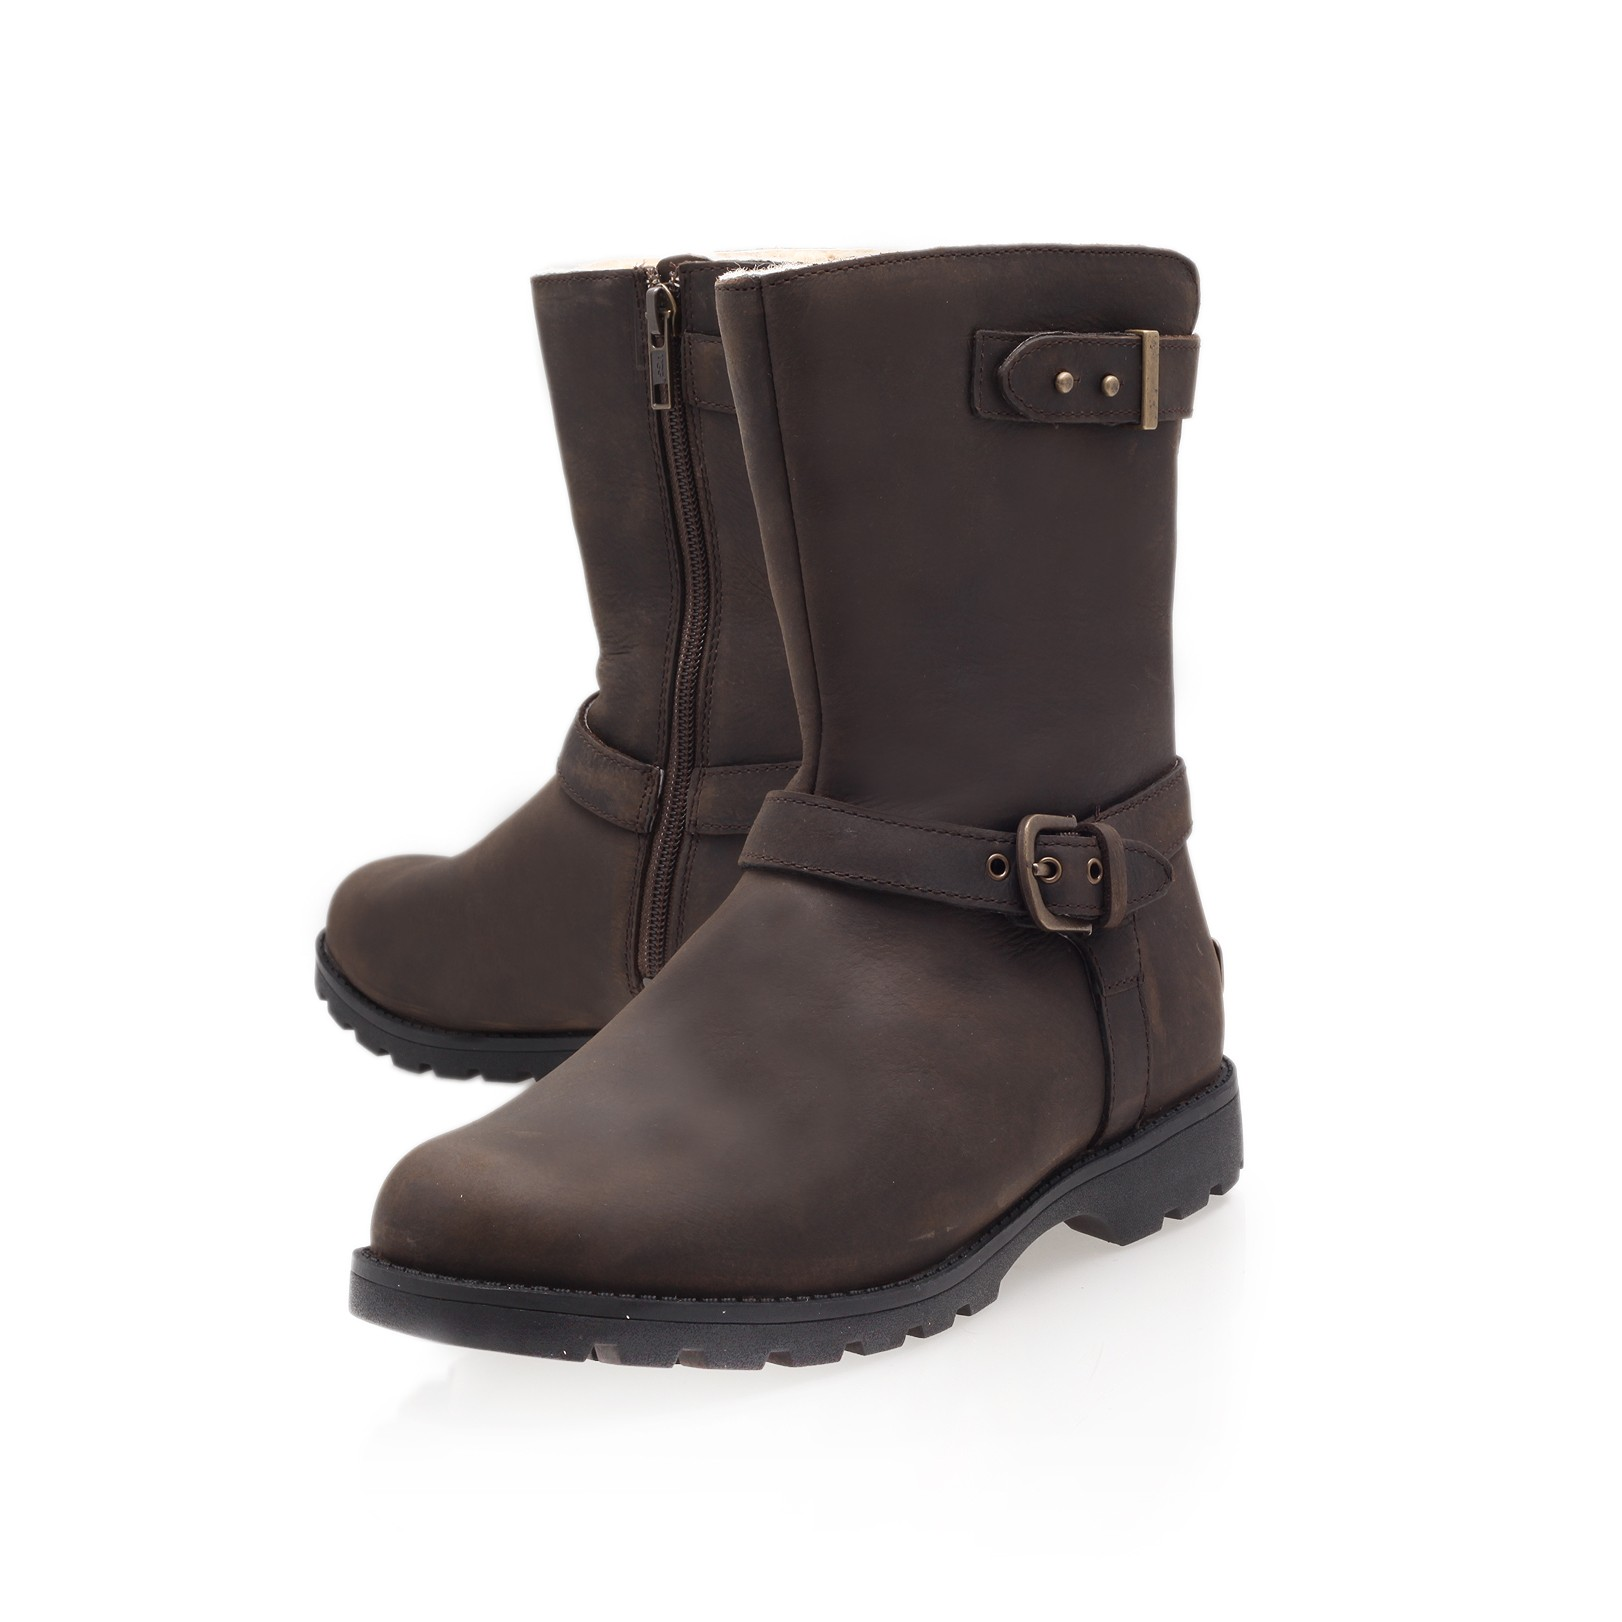 fbdb00182e0 Leather Ugg Boots Grandle - cheap watches mgc-gas.com